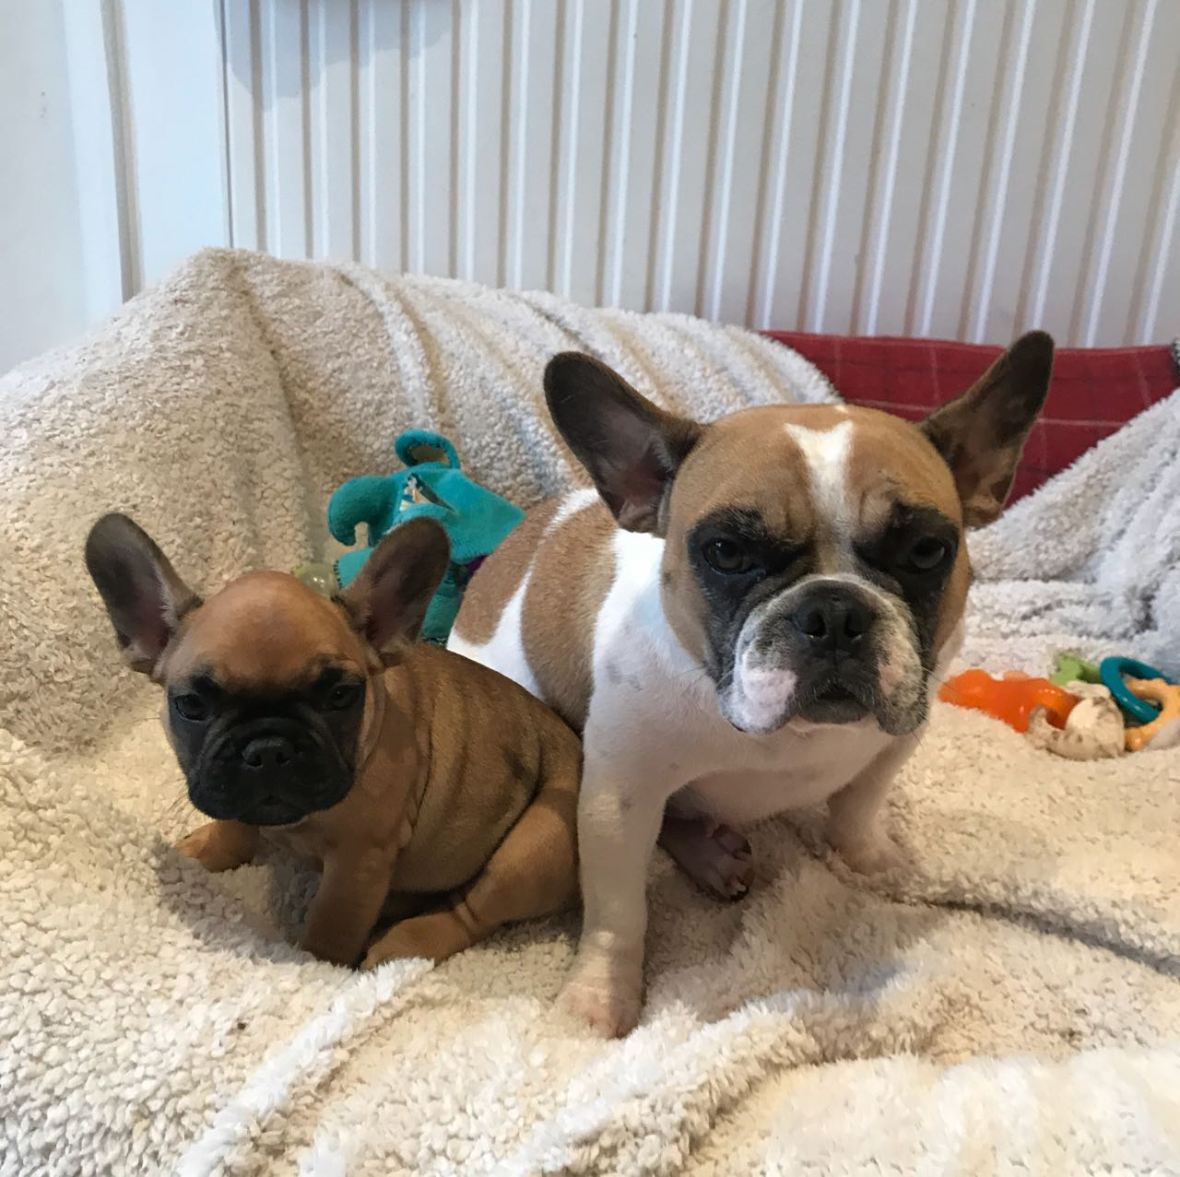 Bonnie, the French Bulldog, and her mum!